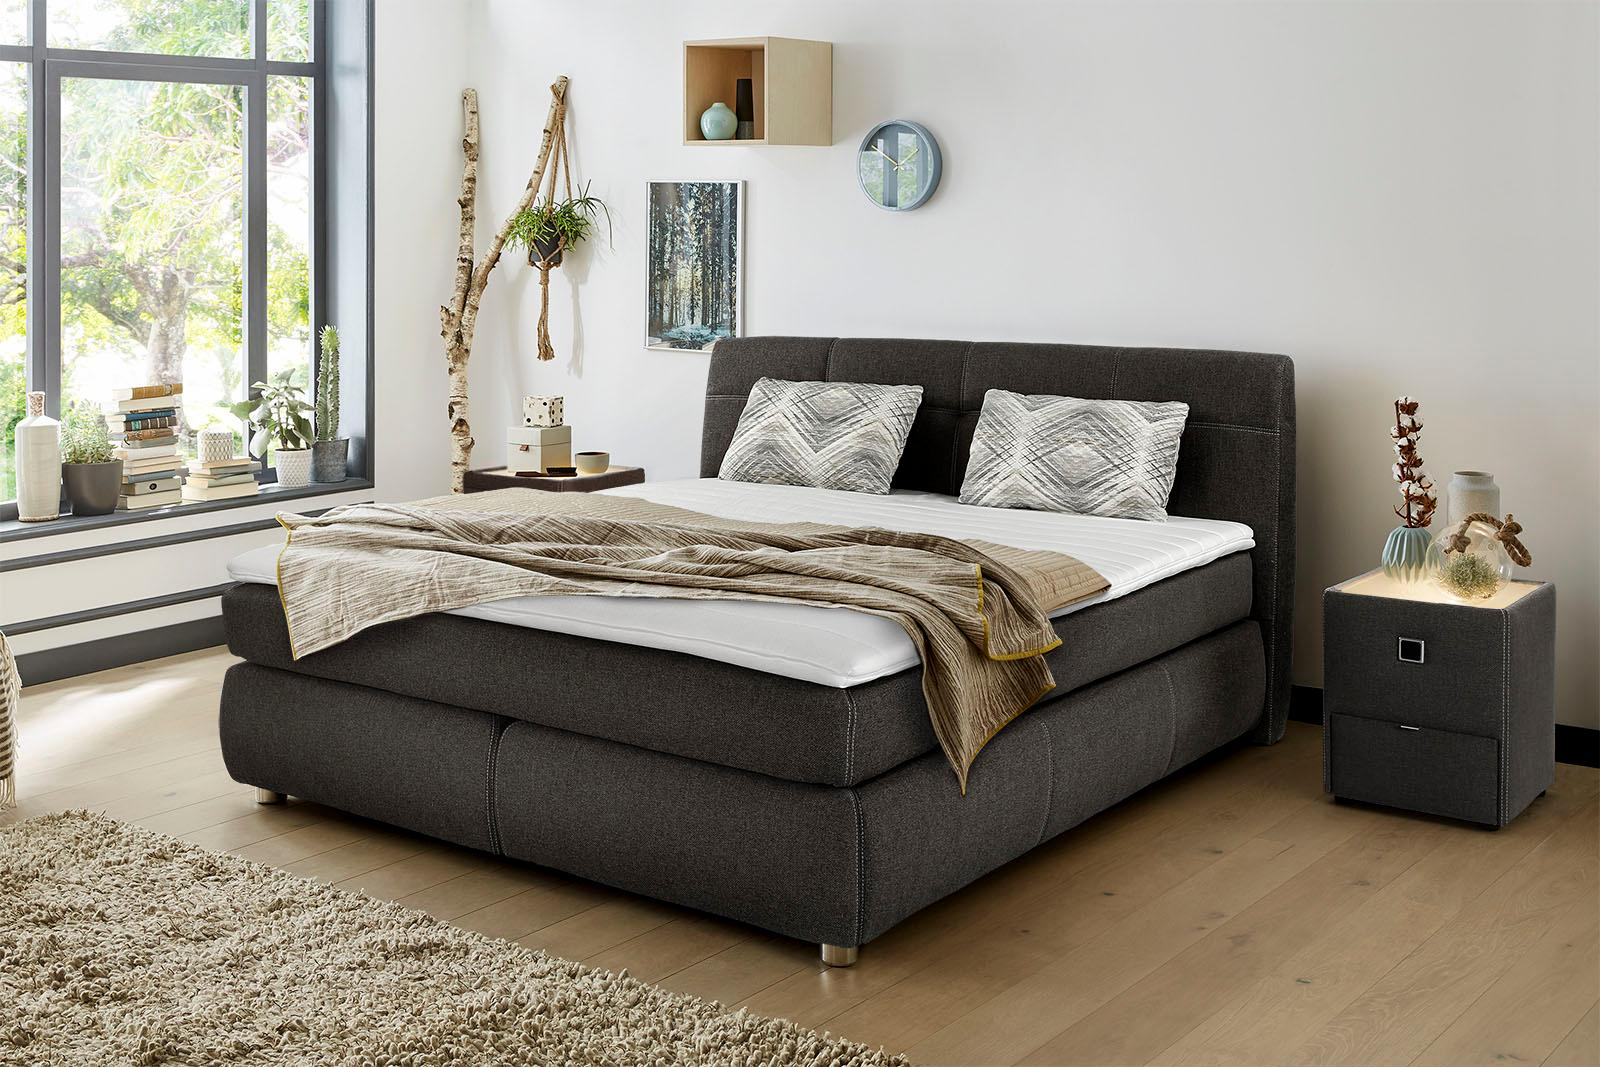 jockenh fer gruppe boxspringbett in h rtegrad 4 mit. Black Bedroom Furniture Sets. Home Design Ideas